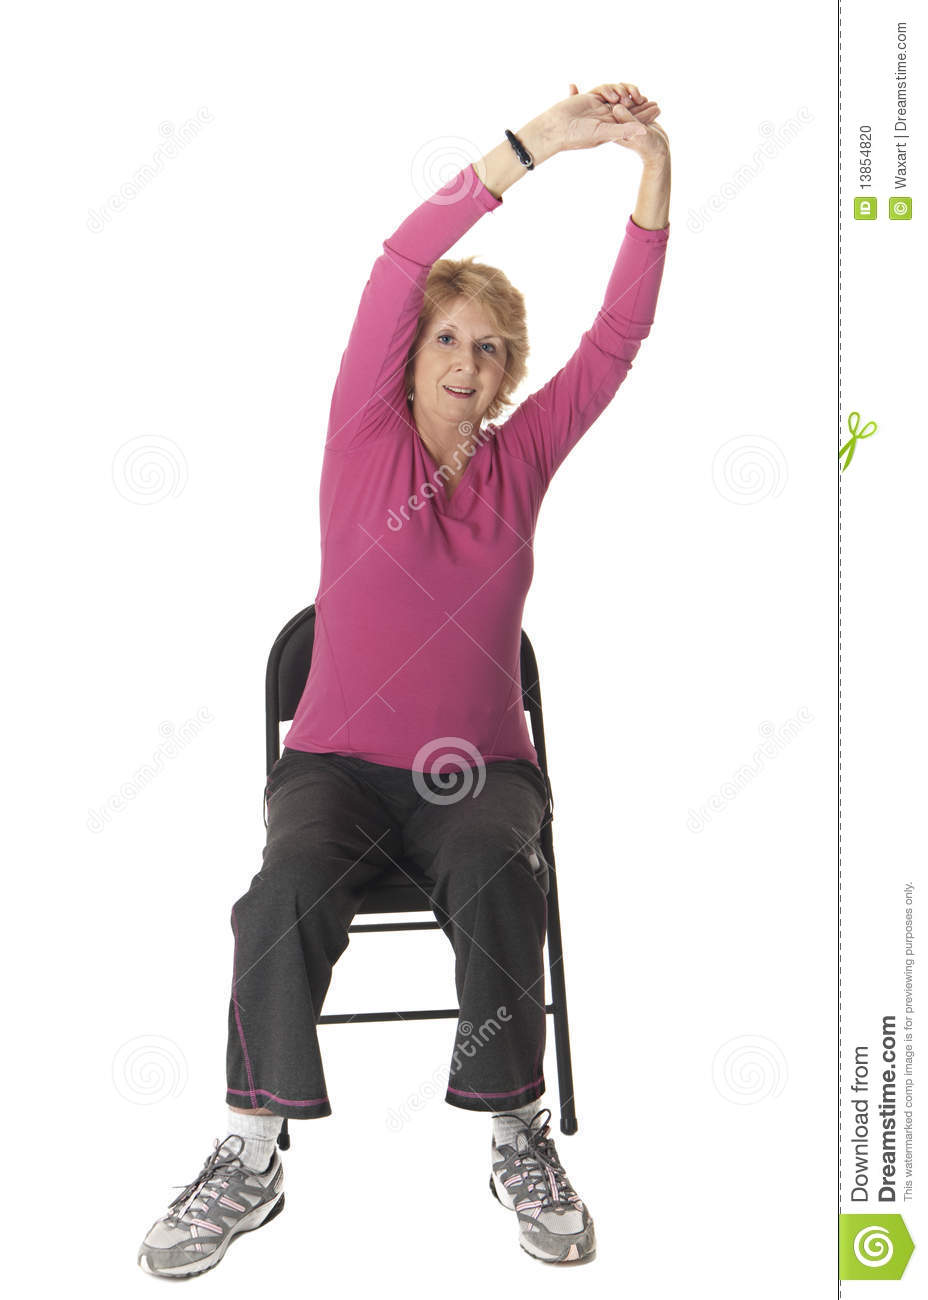 Chair exercise for seniors - Seniors Exercise Cles Breeze Pilates And Yoga